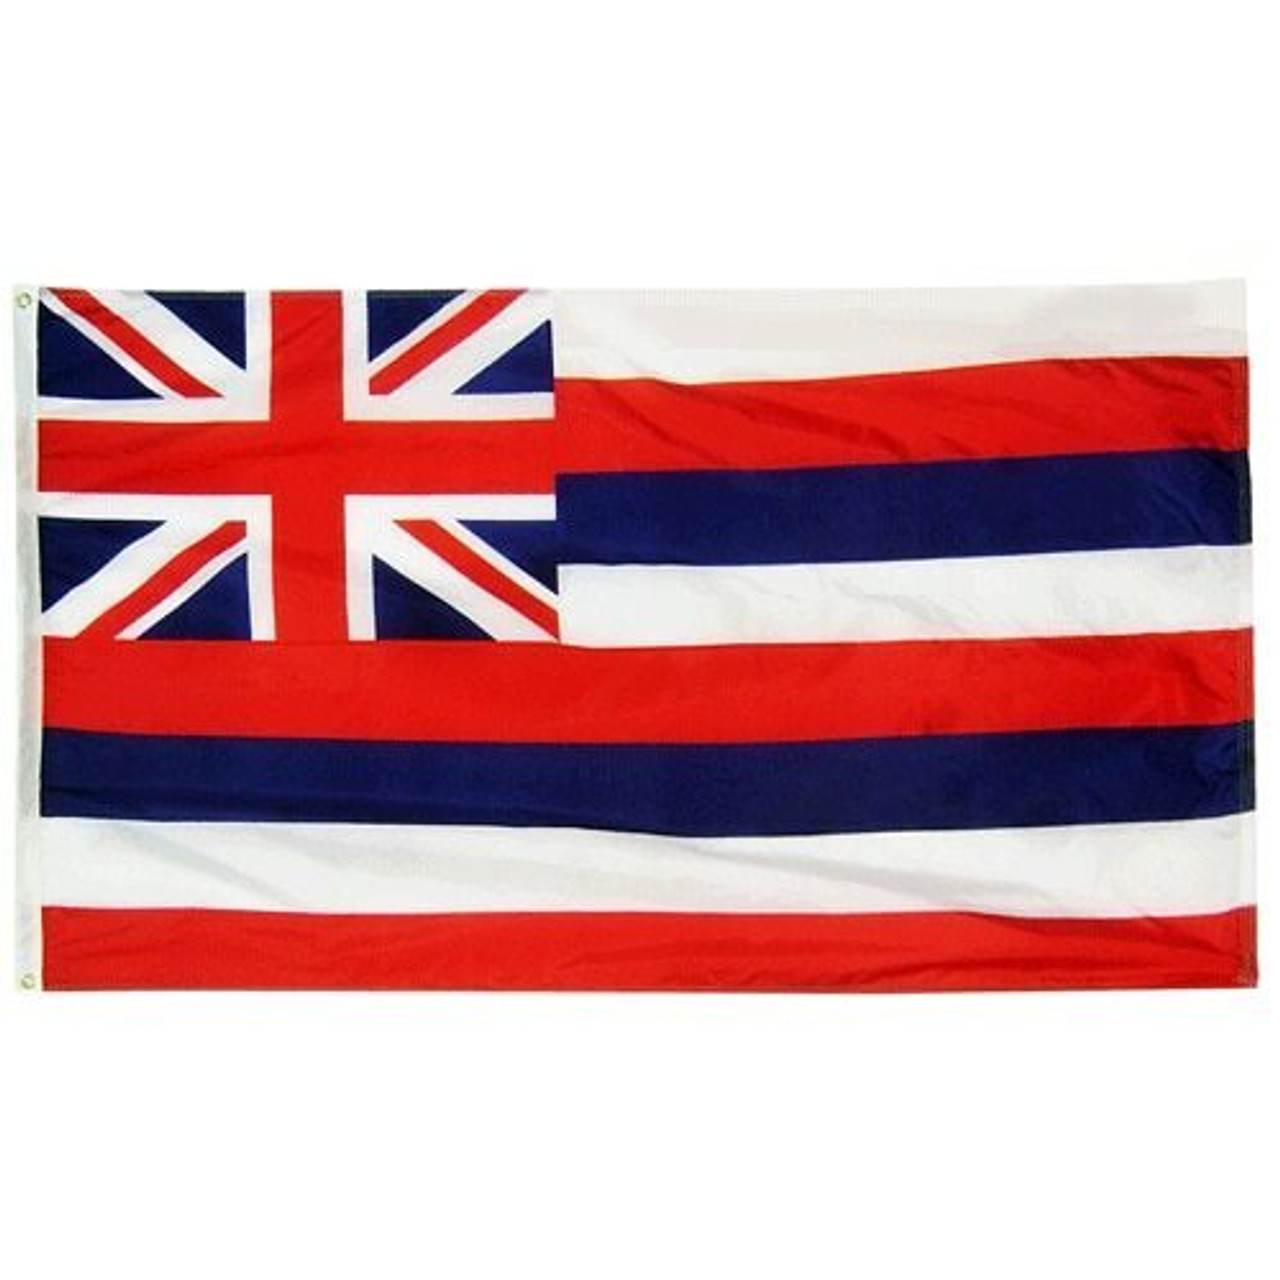 """The Hawai'i Flag is a rectangular flag with a white canvas header and brass grommets. The flag includes the Union Jack of the United Kingdom in the upper lefthand corner. The Union Jack is a red cross outlined in white with a red """"x"""" behind the cross that is also outlined in white. The background behind the cross and """"x"""" is navy. The rest of the Hawai'i flag consists of eight stripes that alternate colors of white, red, and navy."""